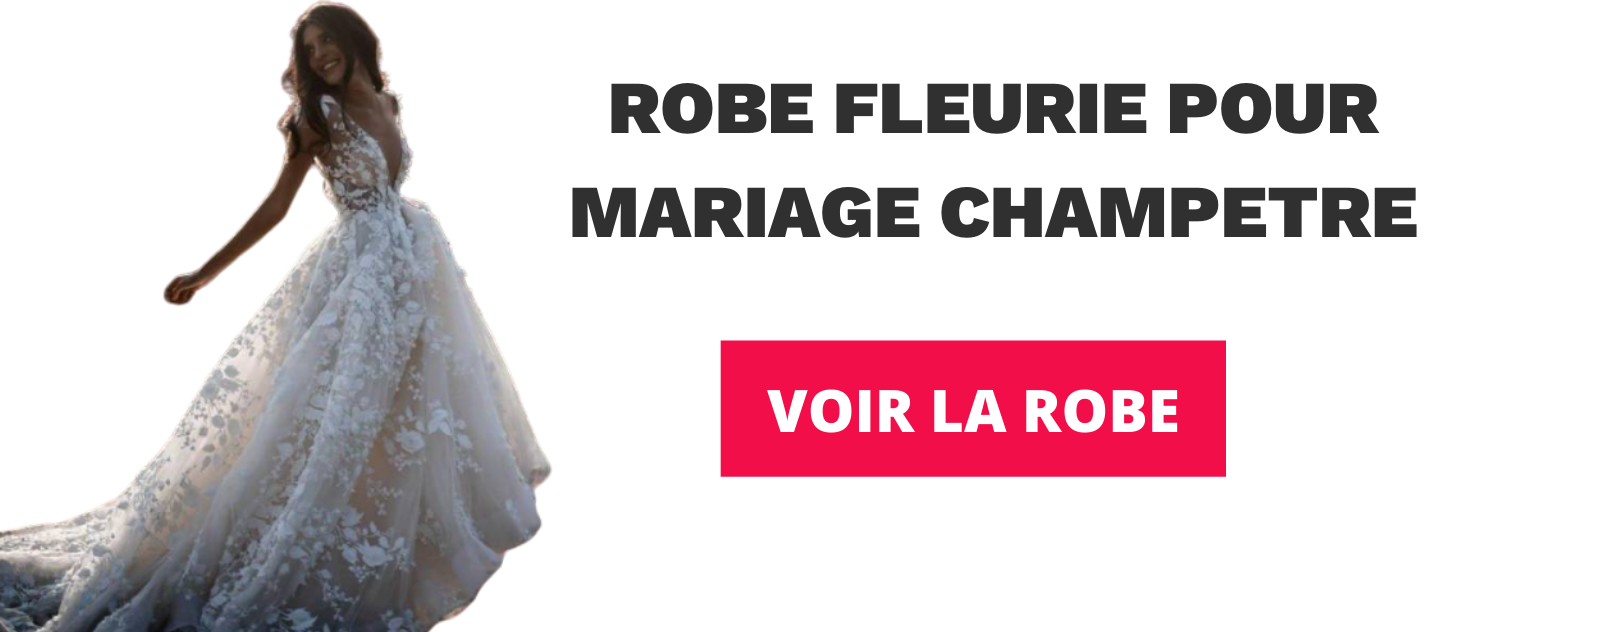 ROBE FLEURIE POUR MARIAGE CHAMPETRE